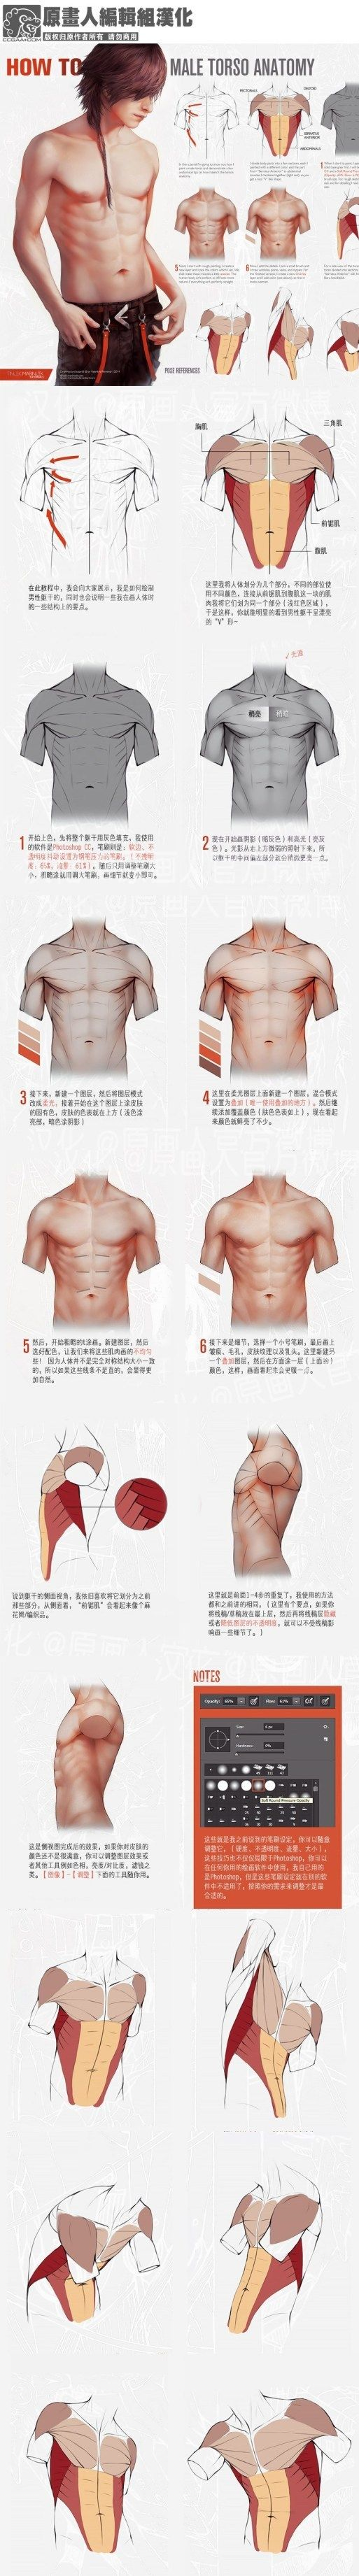 Torso anatomy tutorial | Medical Terminology | Pinterest | Zeichnen ...